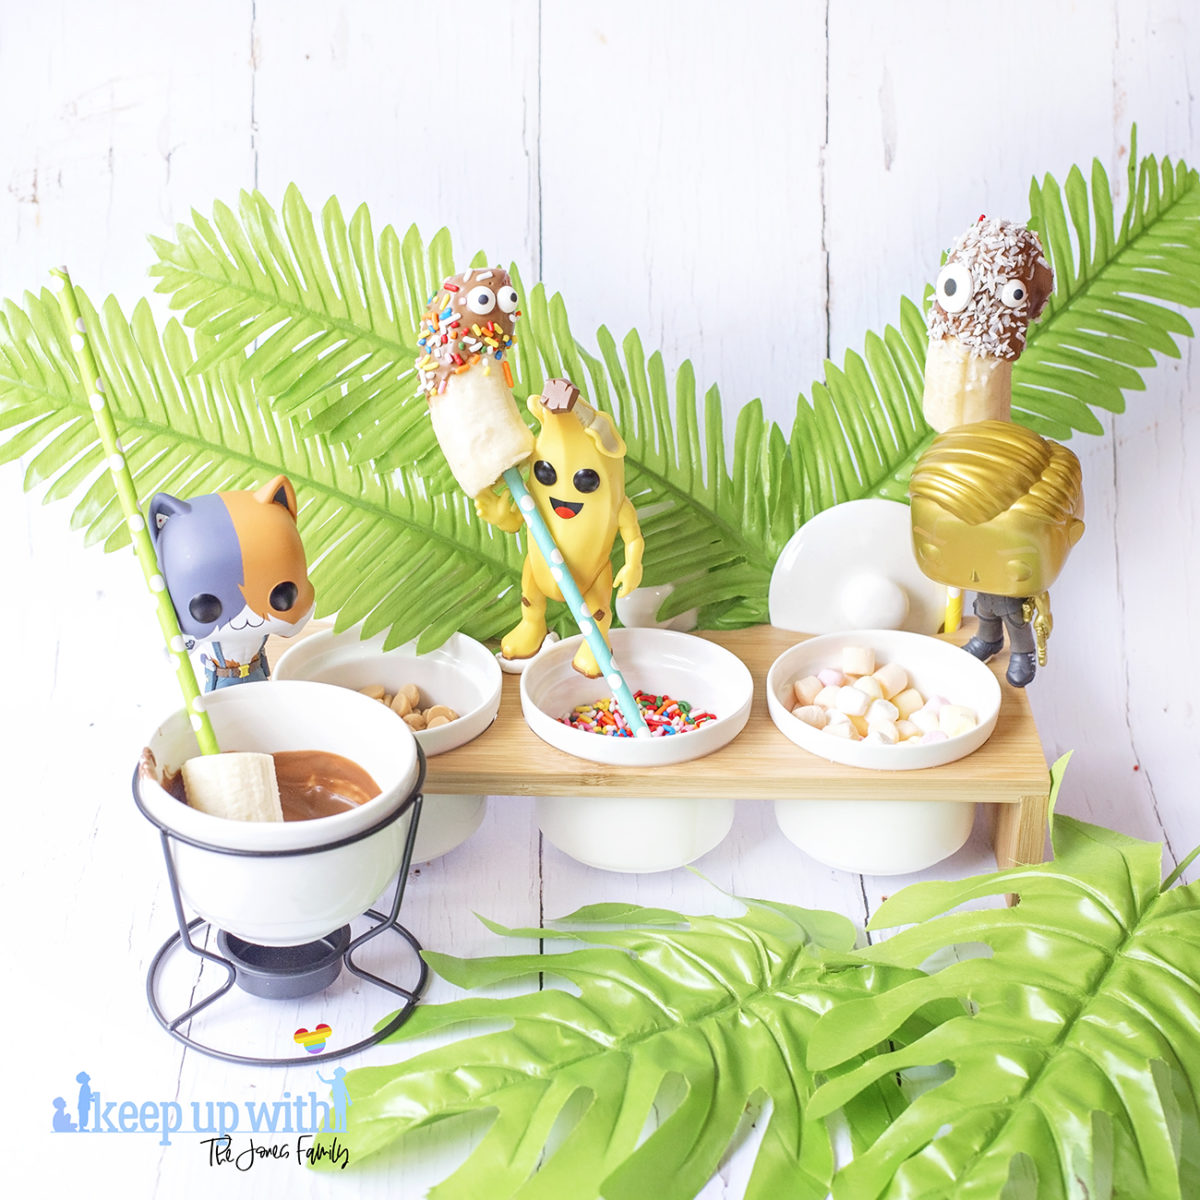 Image shows Peely's Banana Fortnite Fondue Bar, fun food for families. A Funko Pop Vinyl Peely, Meowscles and Midas stand on a fondue bar next to bananas on spotted coloured straws, a chocolate fondue and various toppings including edible eyes, sprinkles, mini marshmallows and peanut butter drops. Image by Sara-Jayne from Keep Up With The Jones Family.